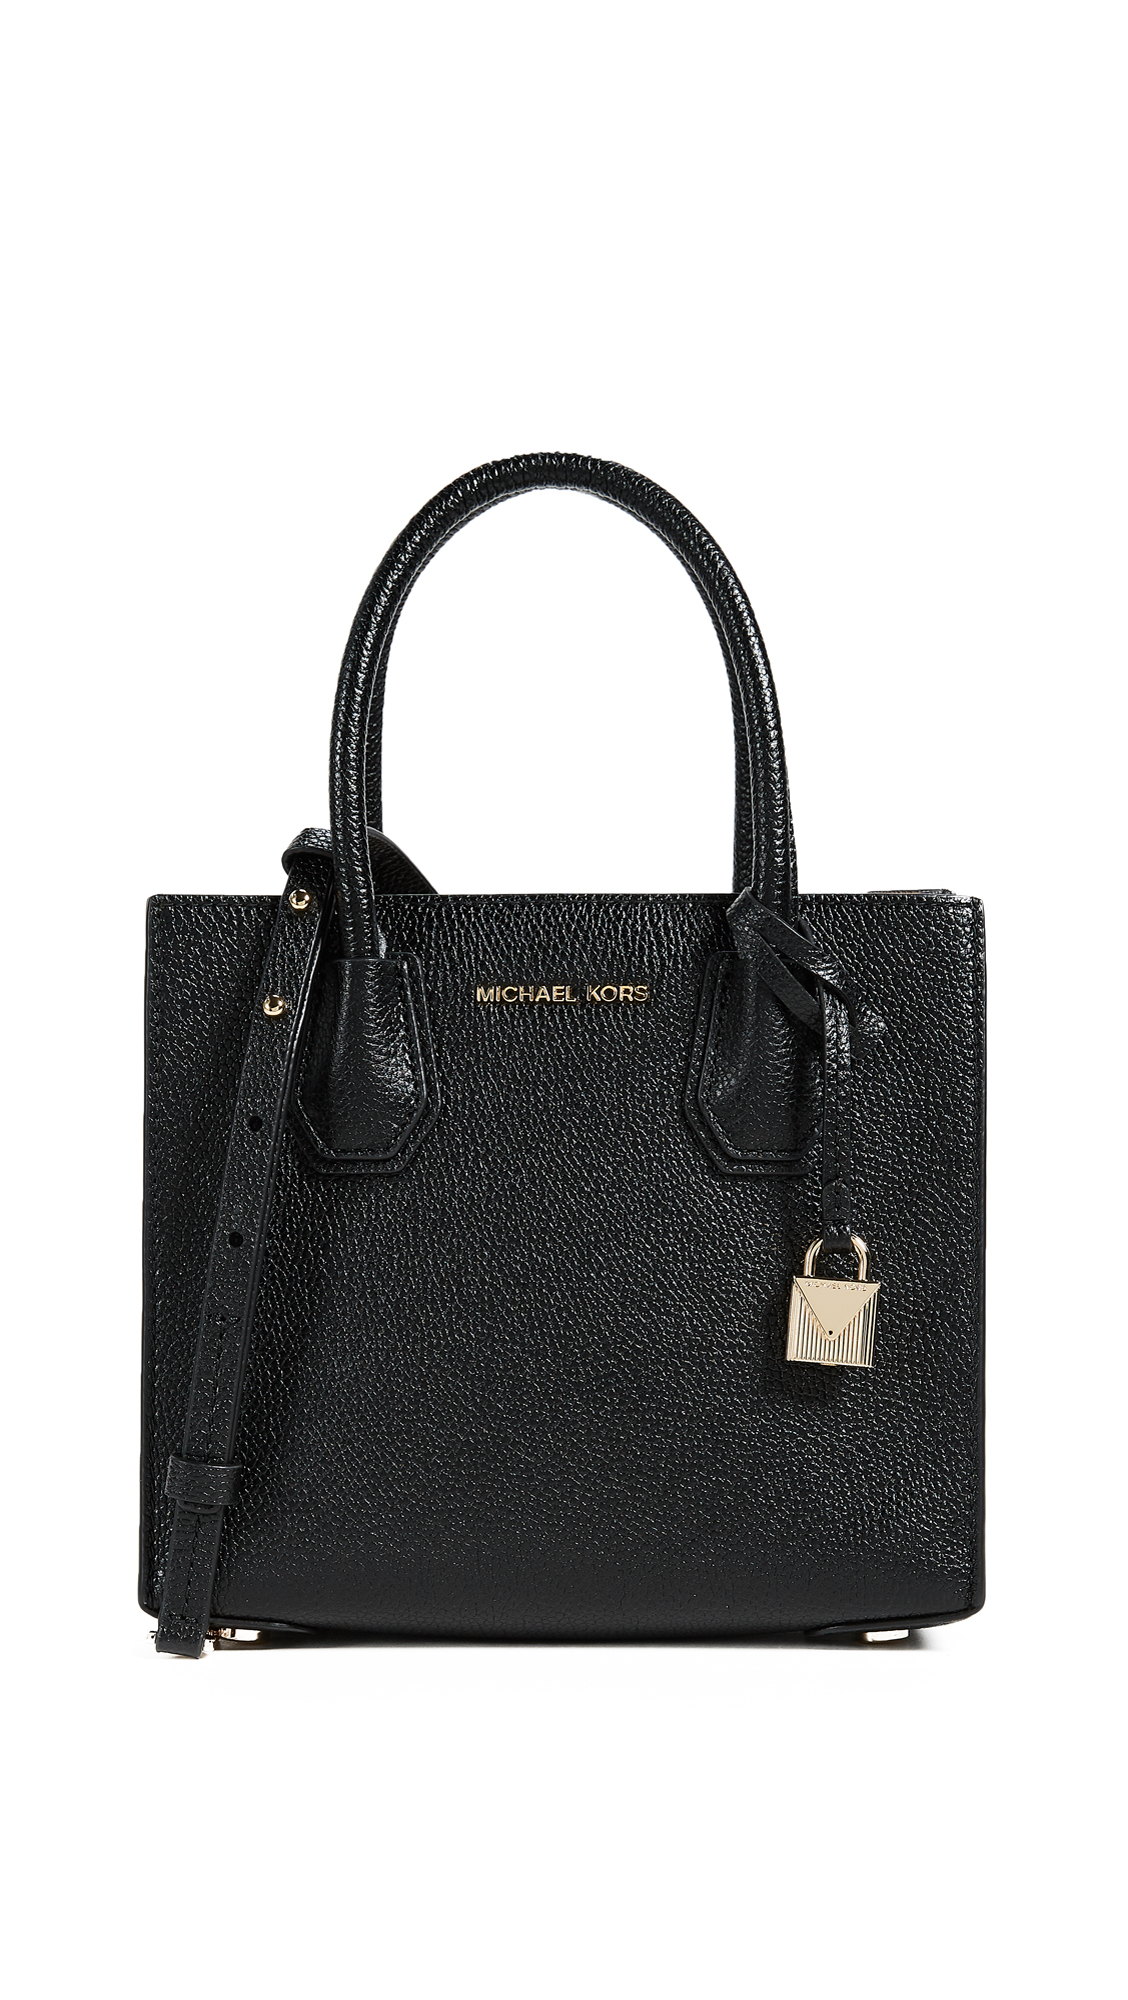 MEDIUM MERCER TOTE